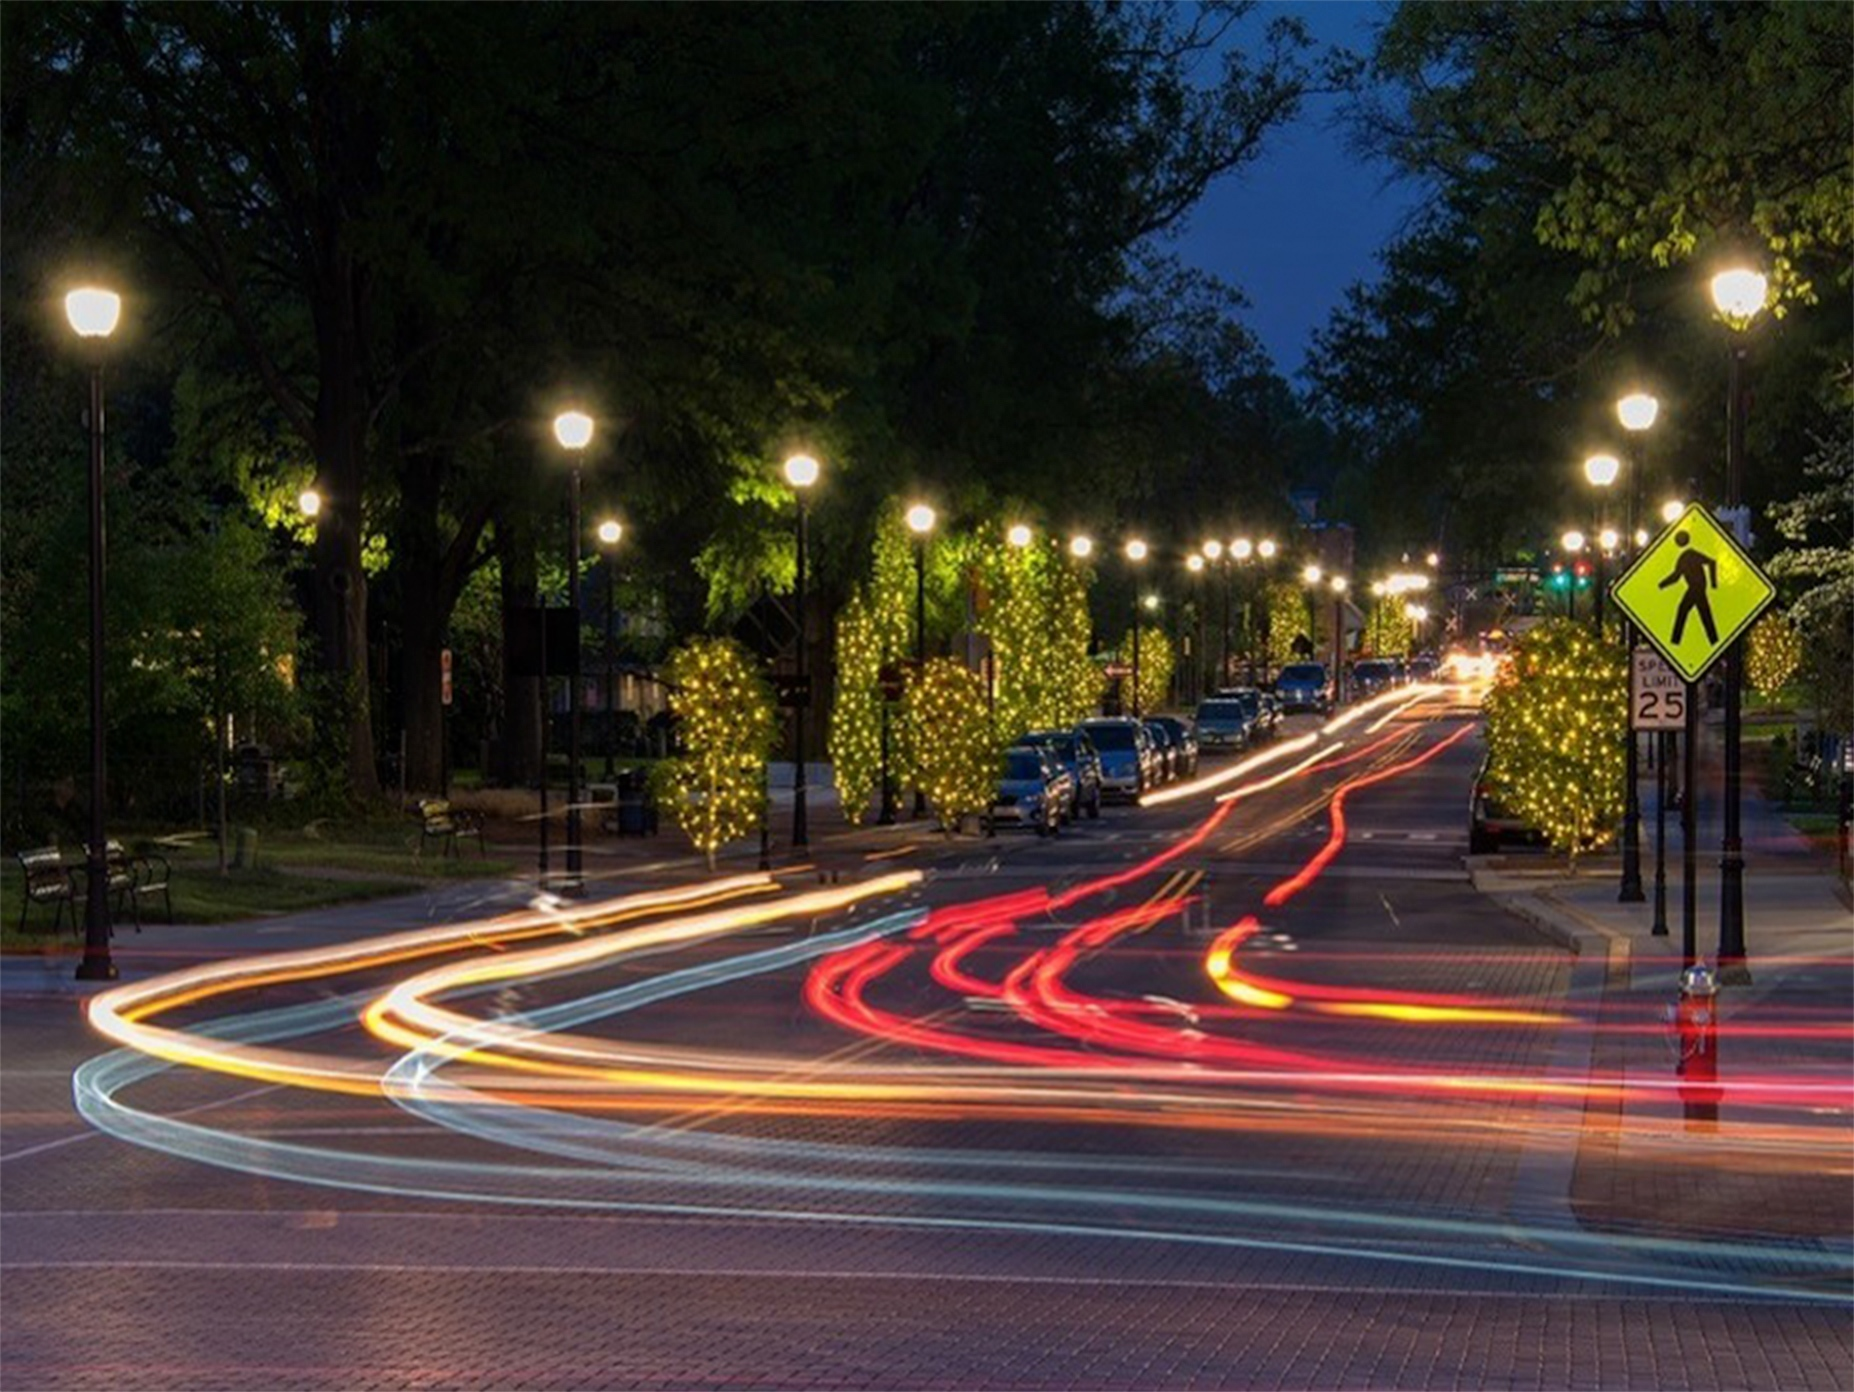 Photo of a road in downtown Cary, NC at night.